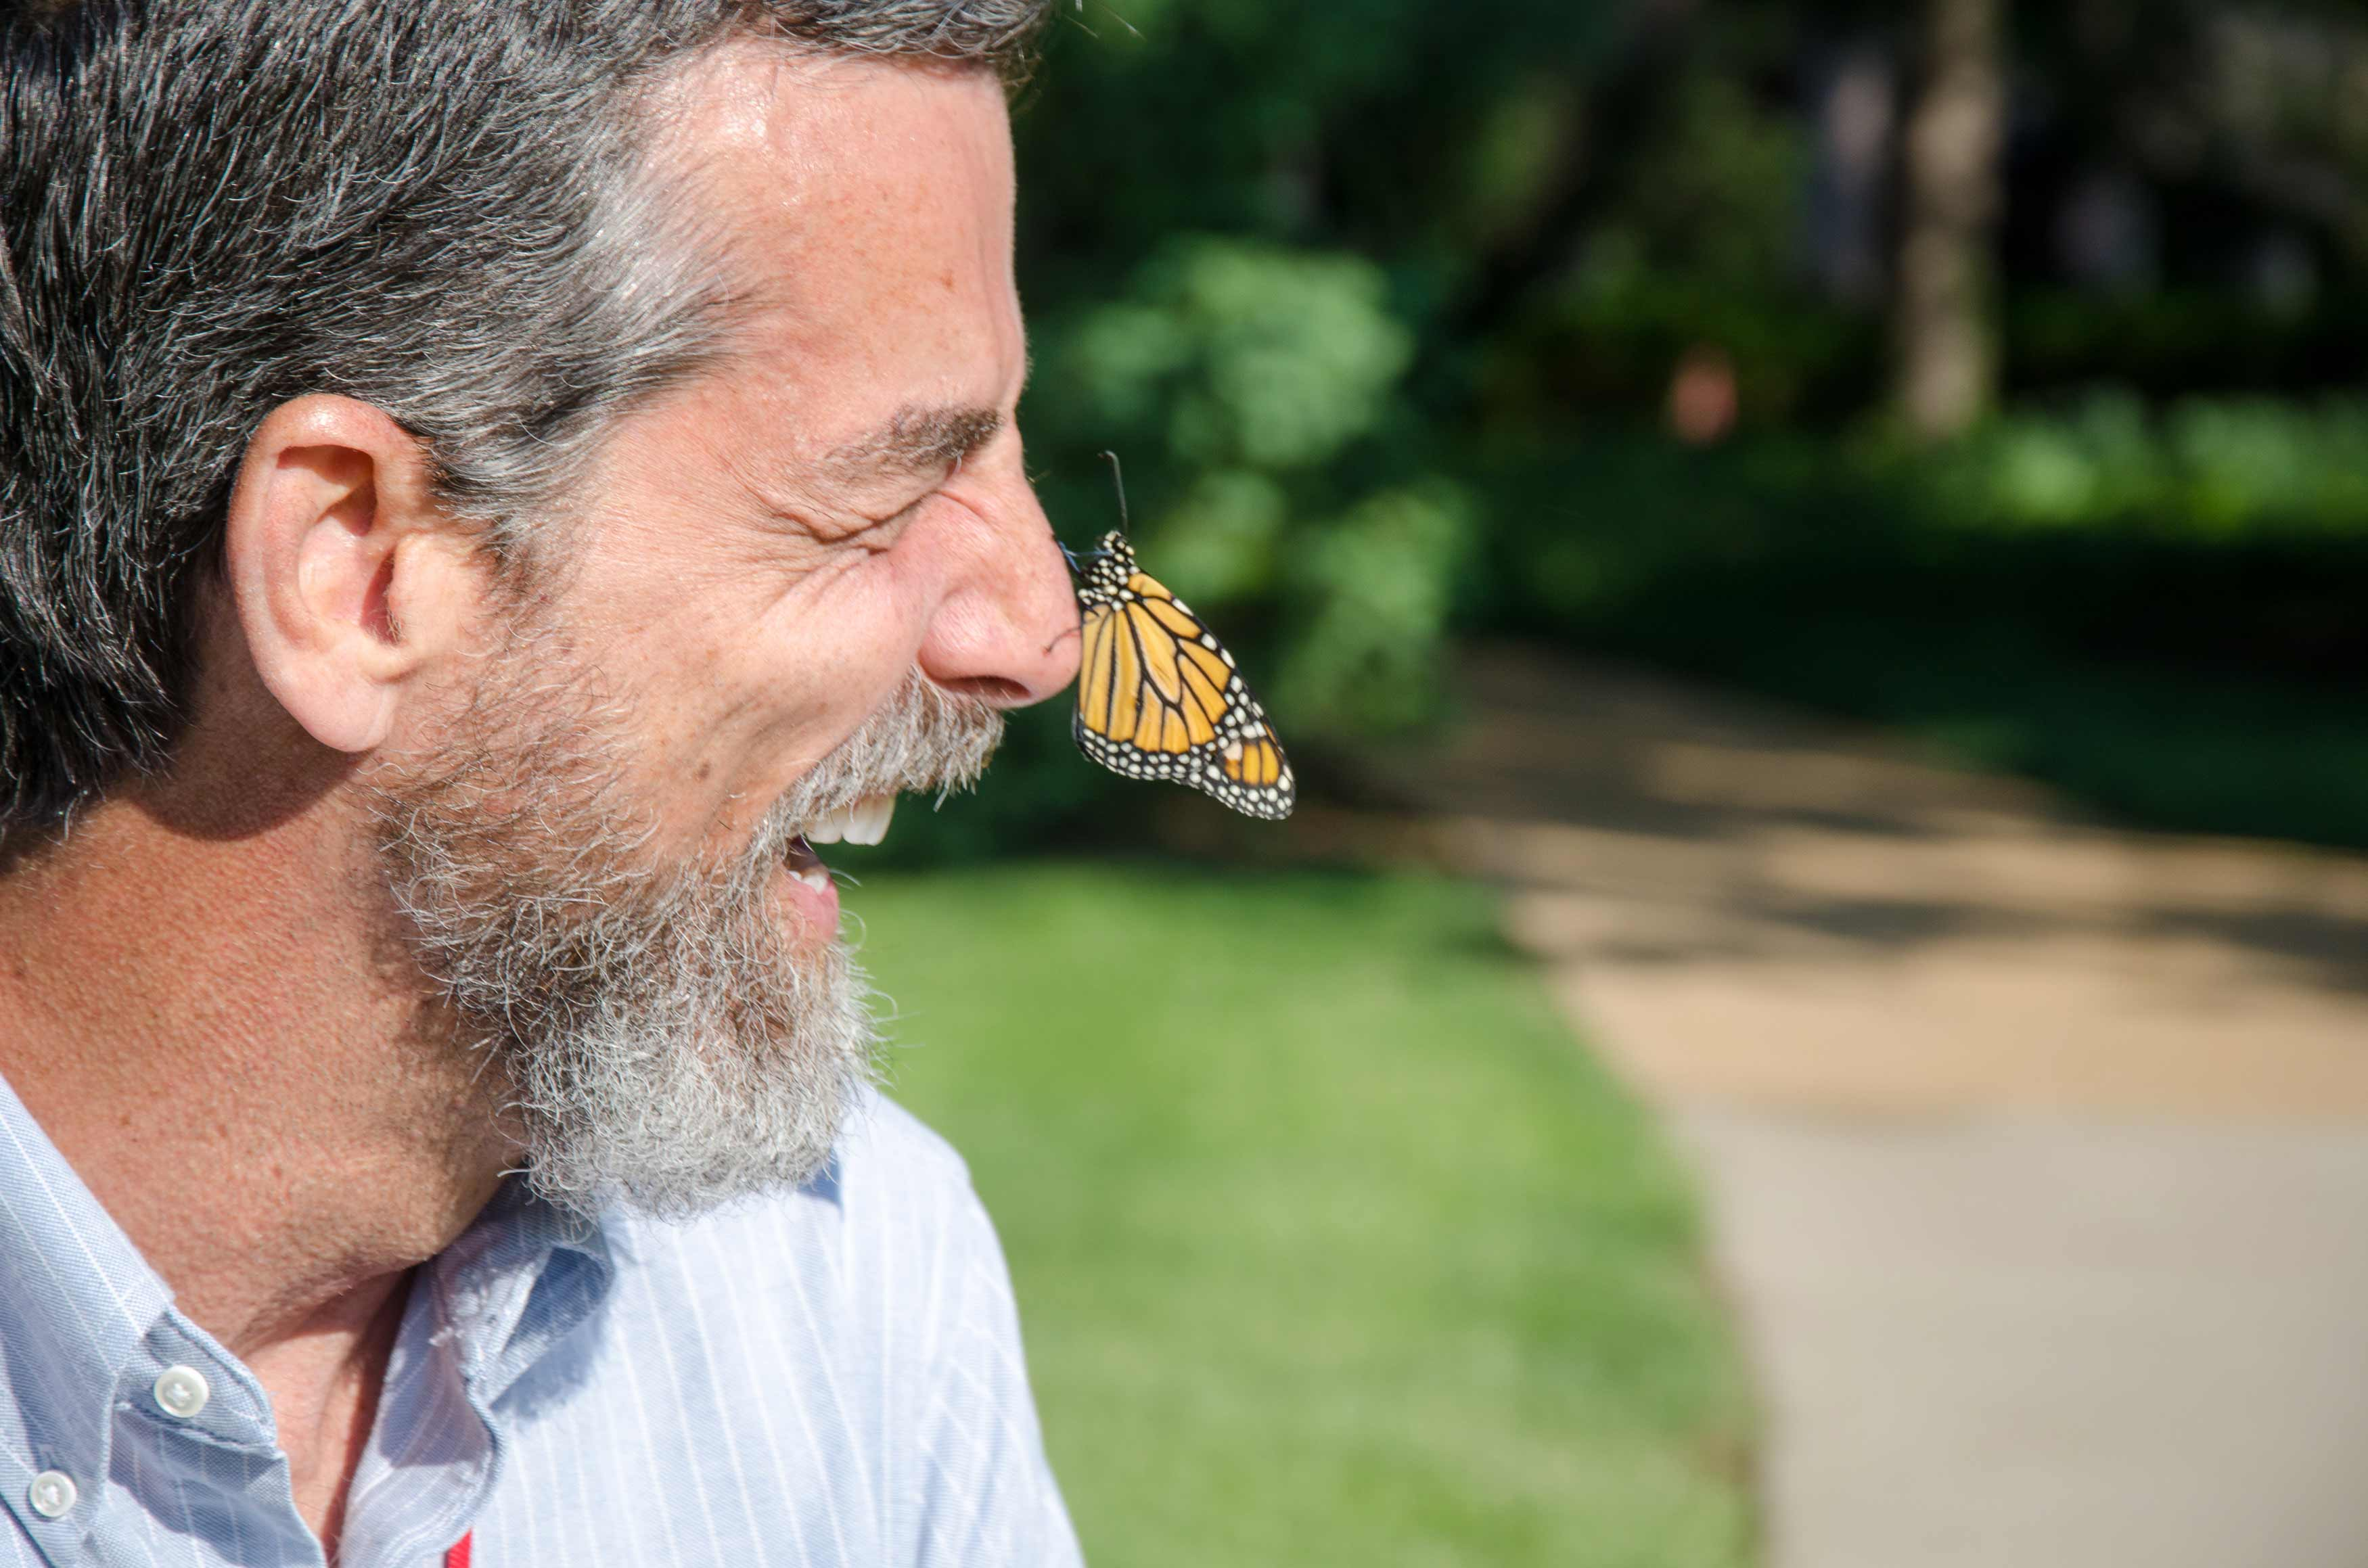 Monsanto is working to find solutions to protect this valuable pollinator.